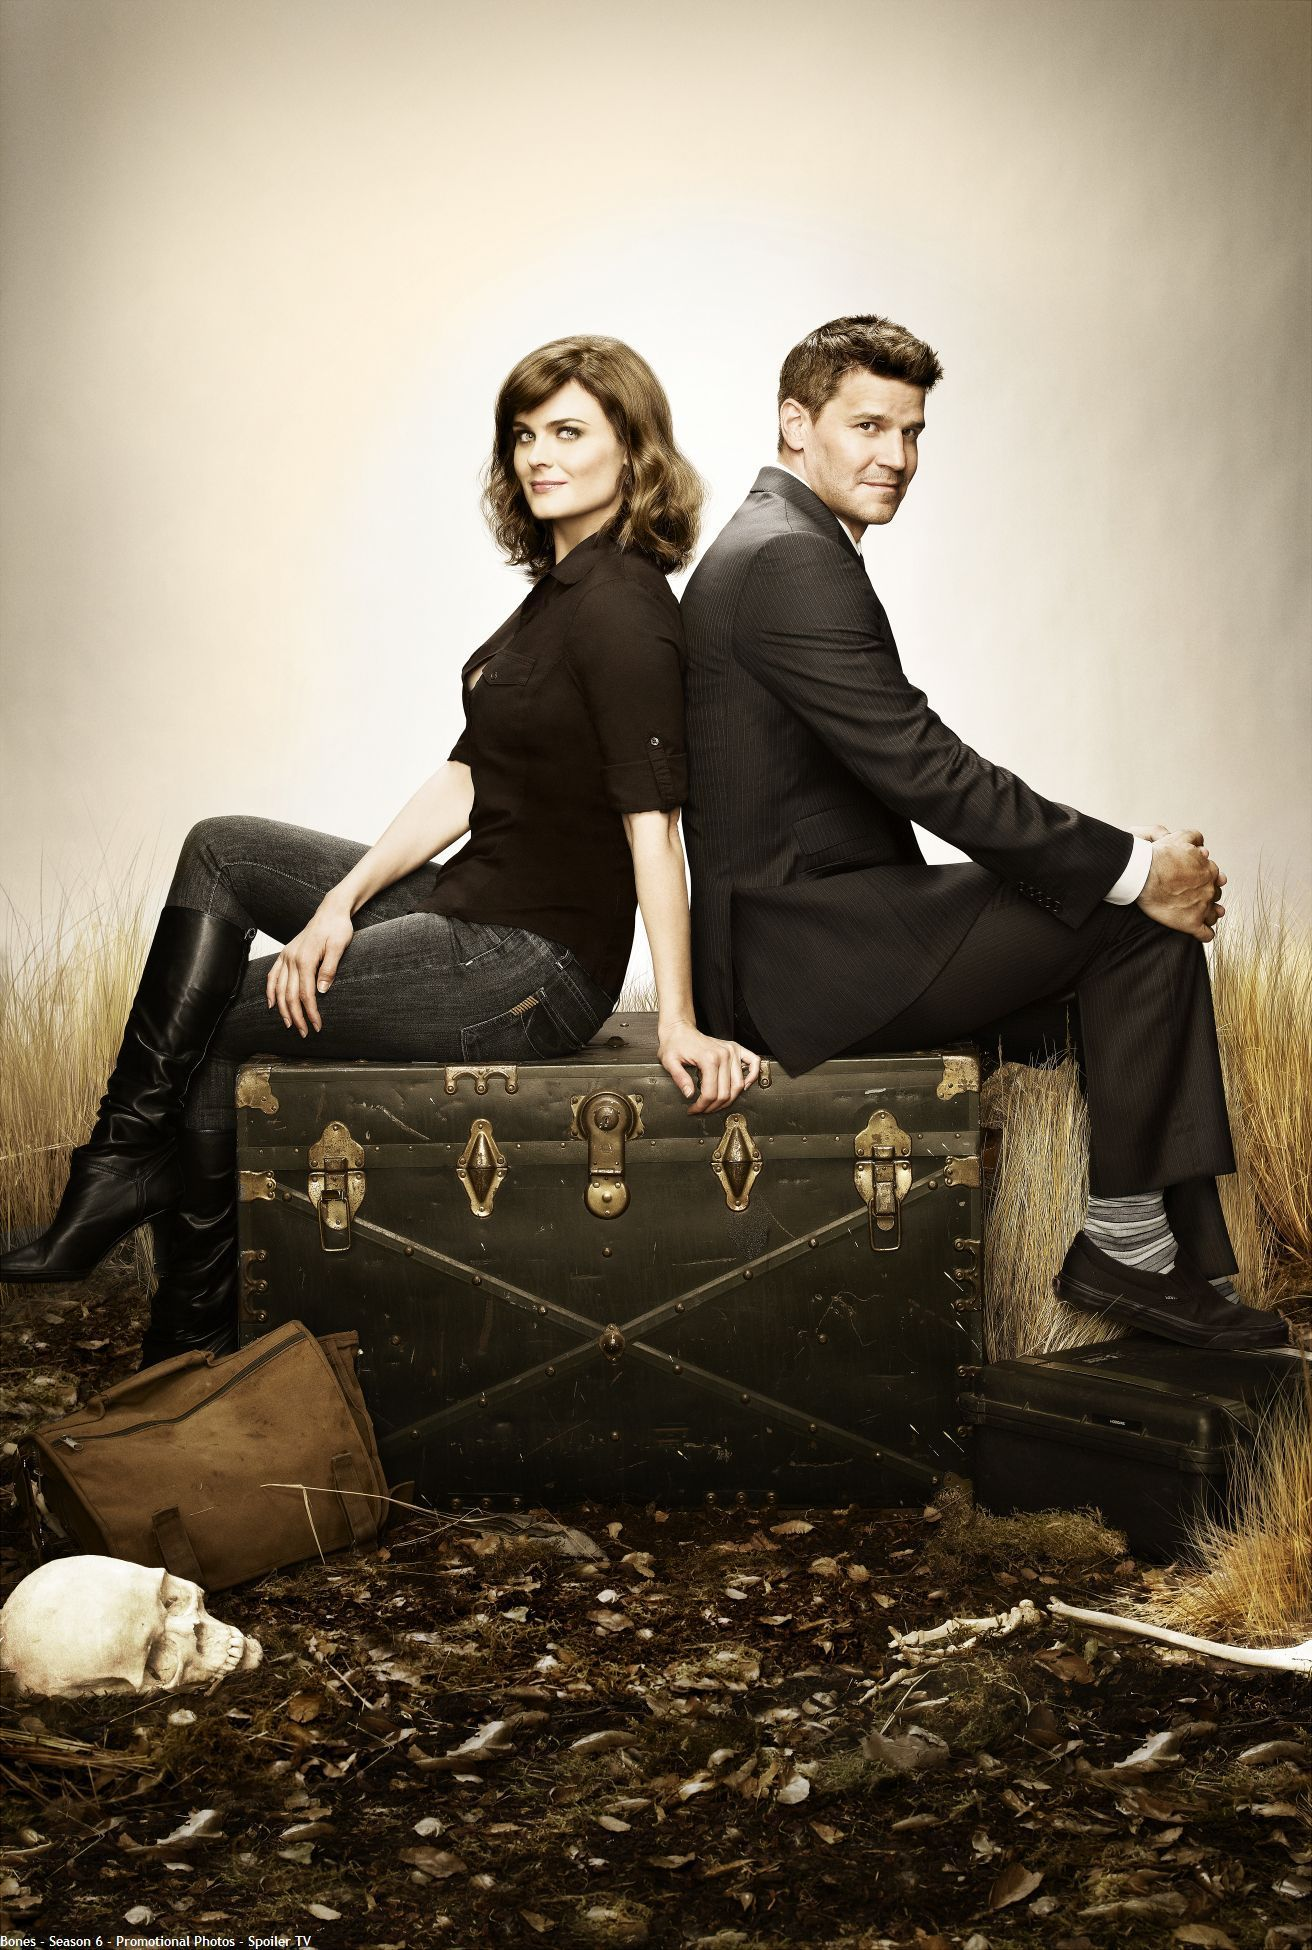 Bones/Booth Season 6 Promotional Poster (HQ) - Bones Photo ...